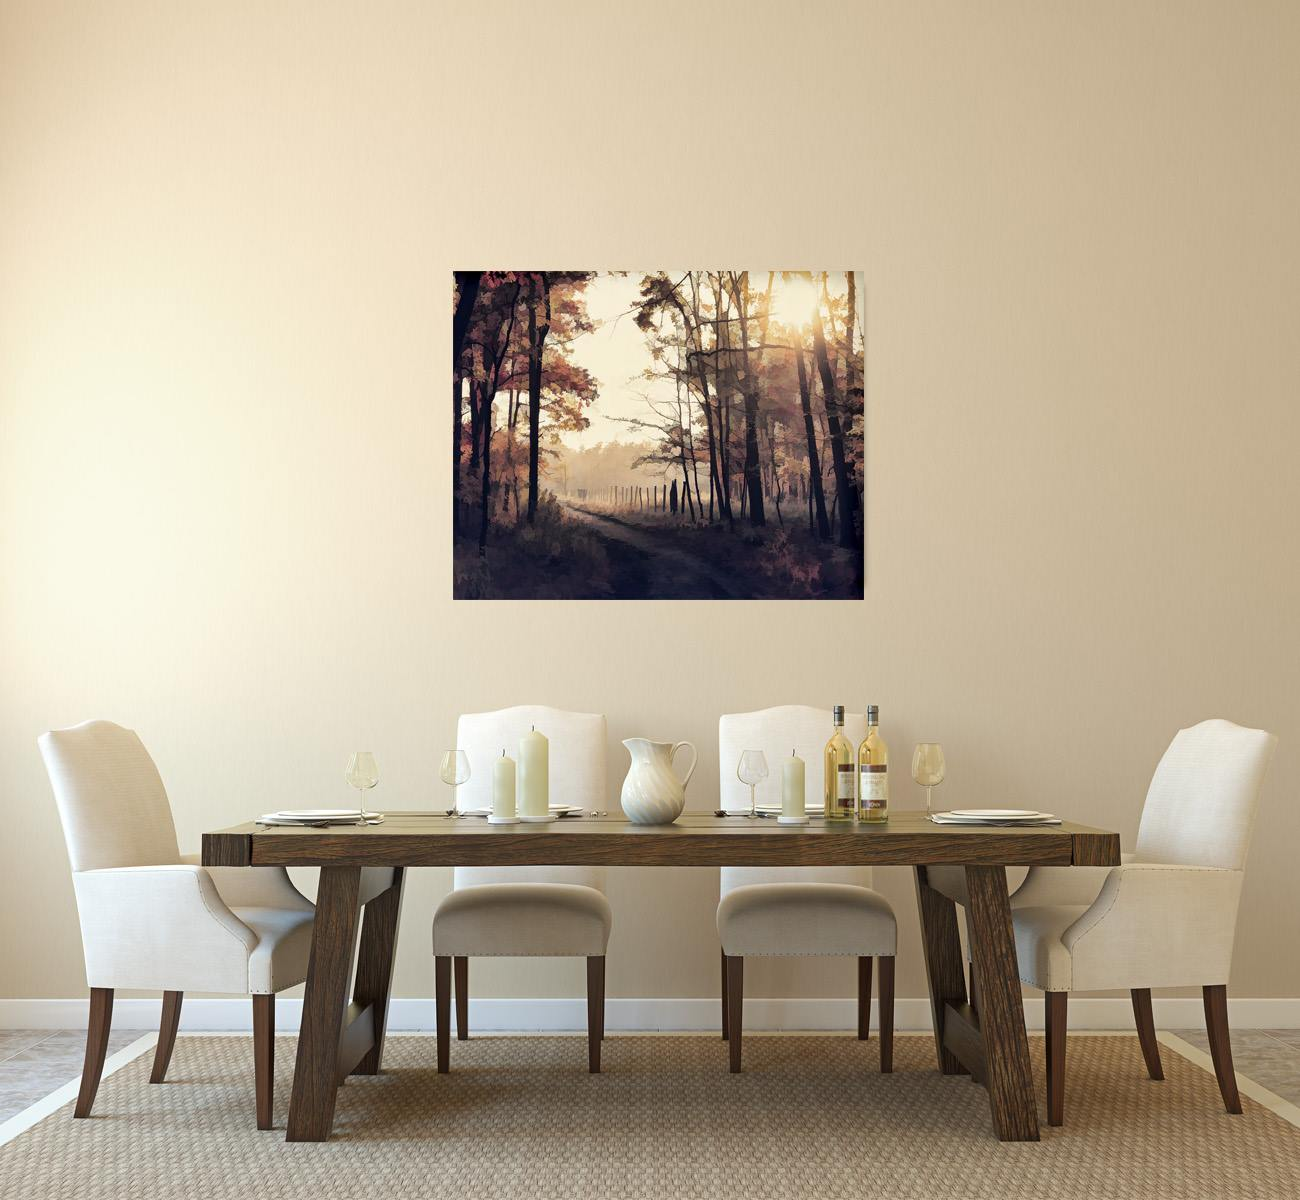 ArtBoja Custom Wall Decor Prints in the Dining Room